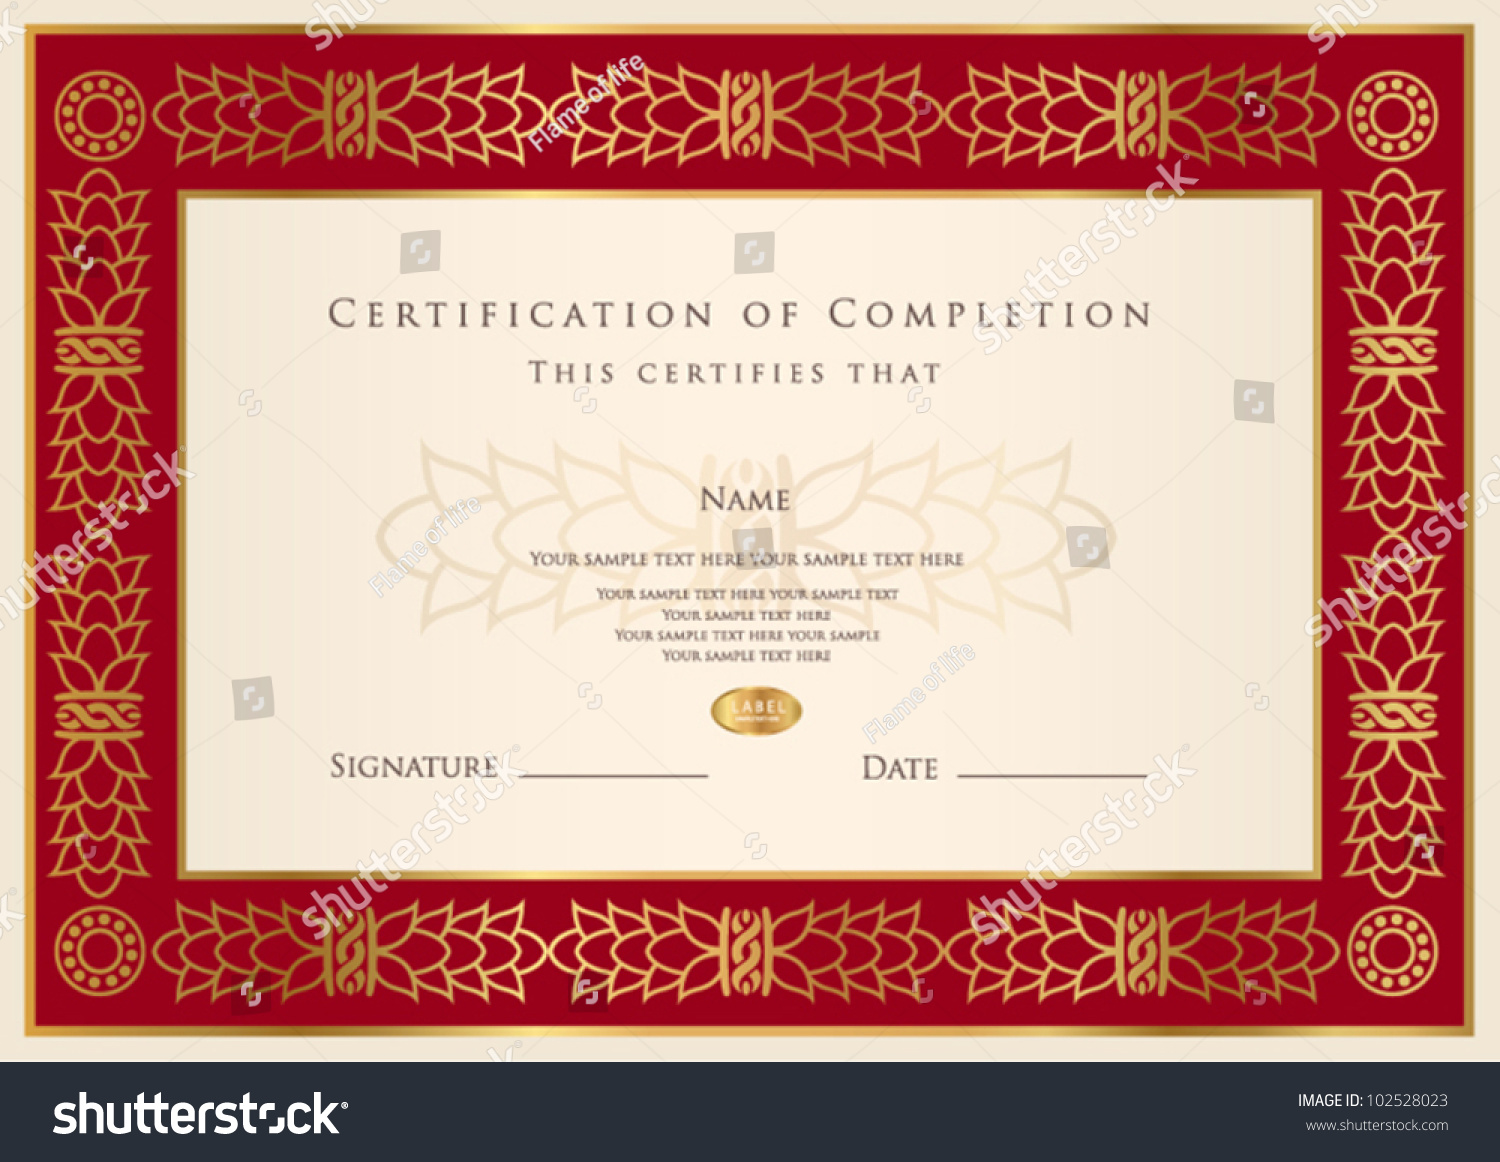 Horizontal Certificate Of Completion Template With Golden Pattern And Red  Frame. This Design Usable For